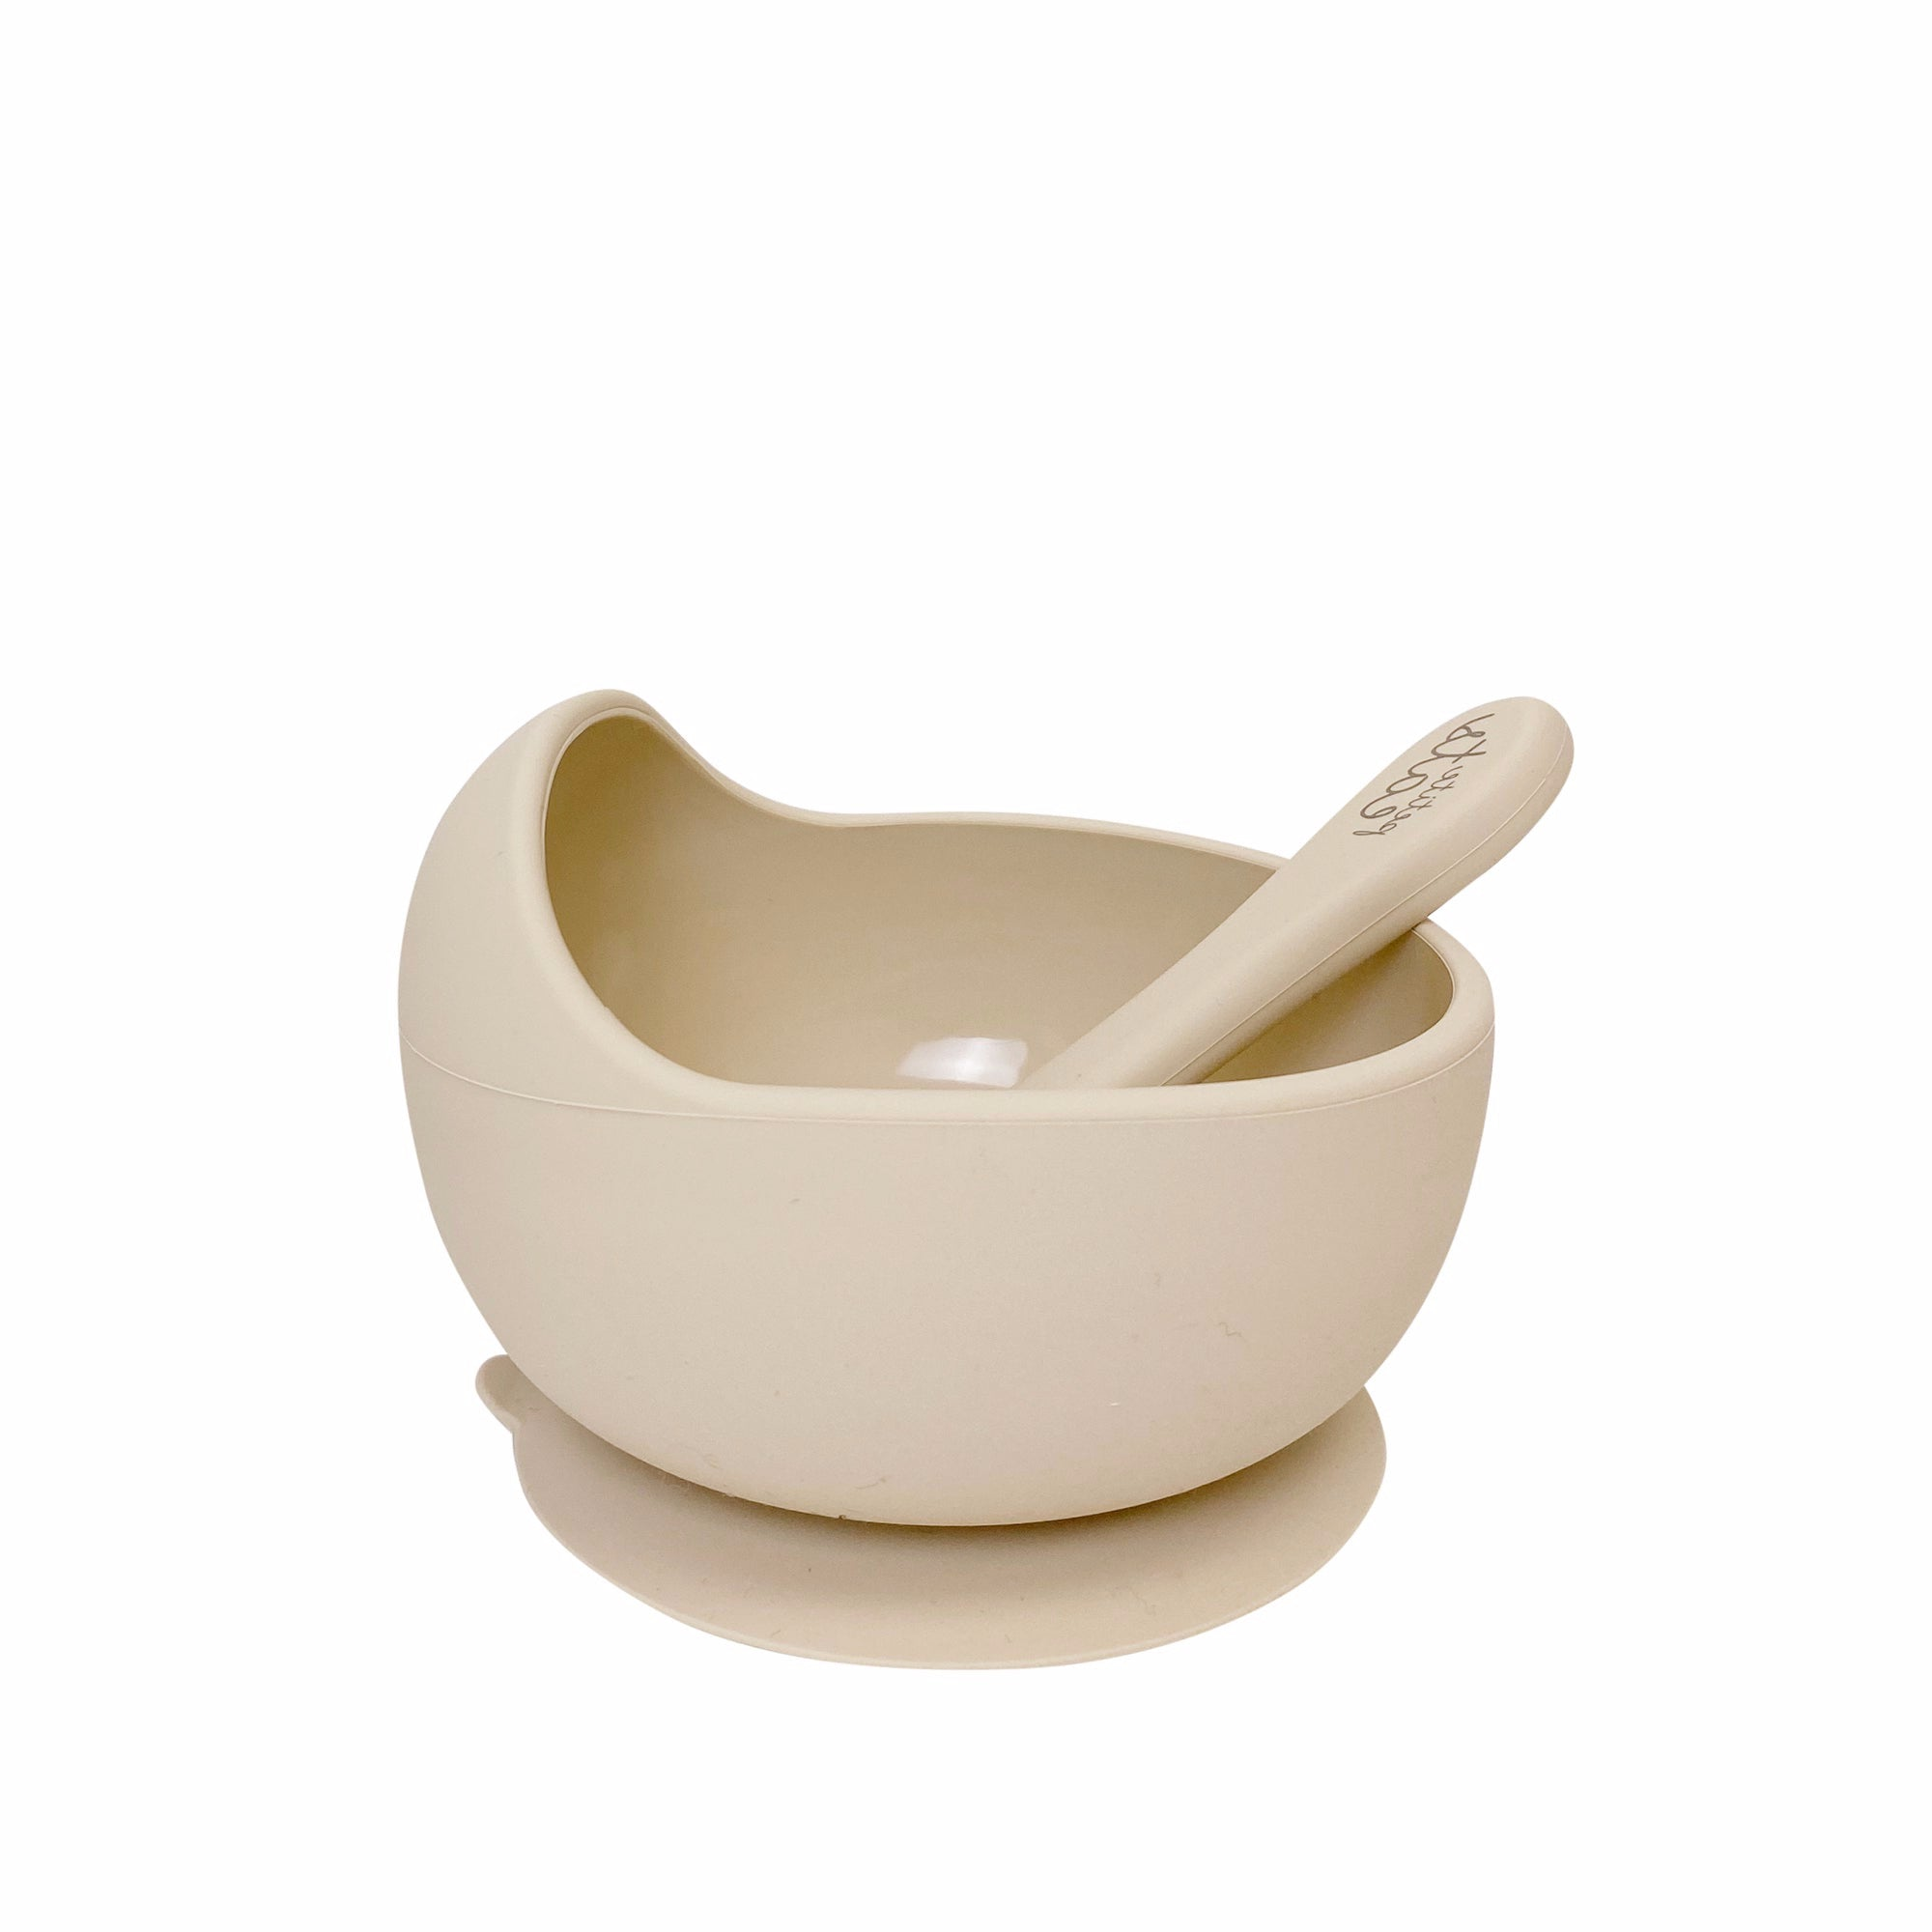 Suction Bowl & Spoon - Sand - Petite Eats - Baby - Paper Plane - Tauranga Stockist